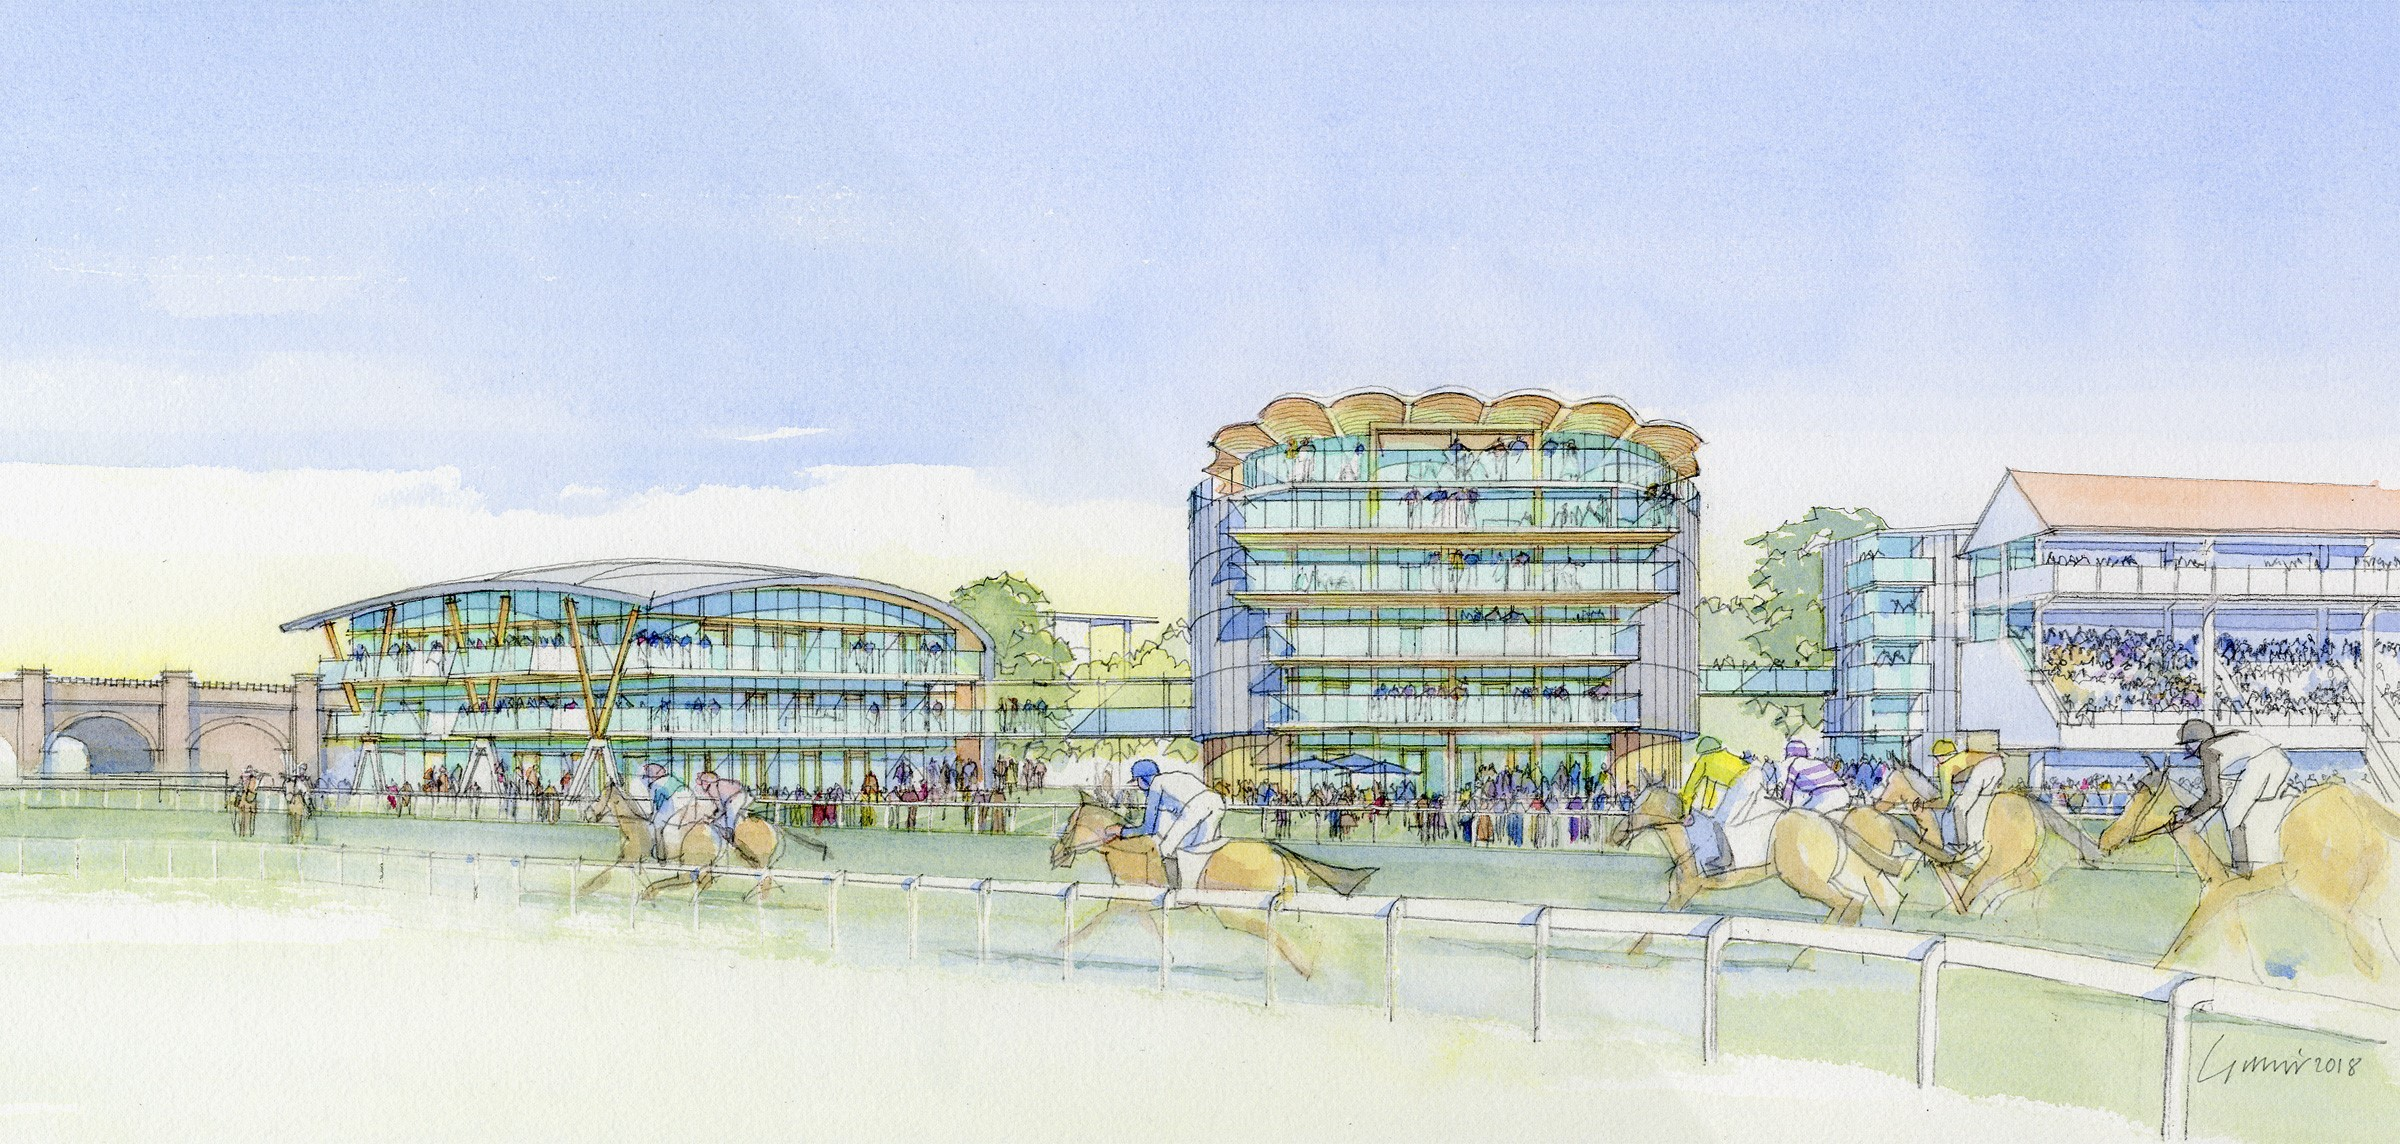 An artist's impression of the masterplan for Chester Racecourse.